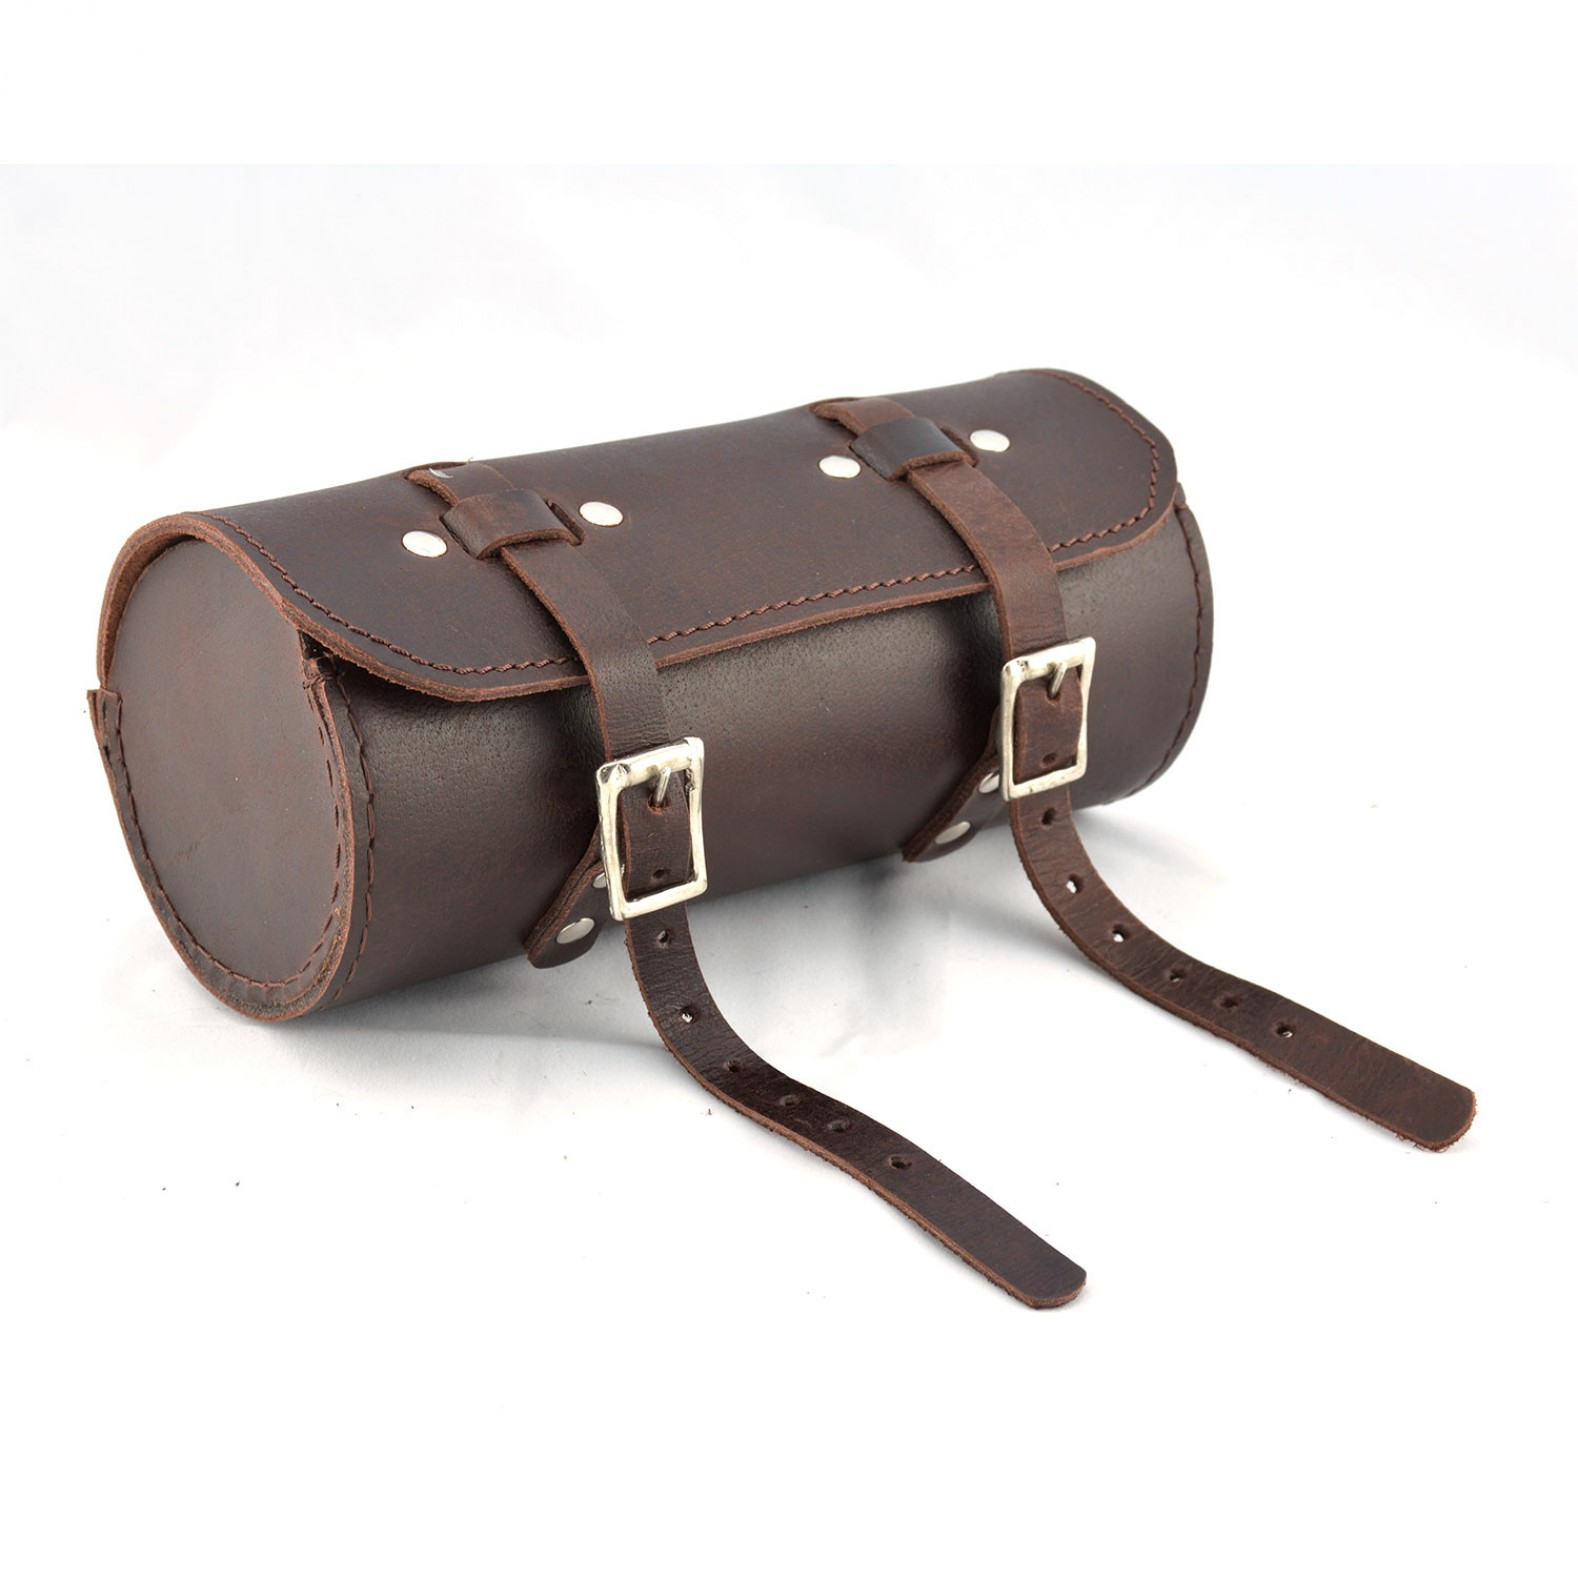 Genuine Leather Bicycle Saddle Bag Utility Tool Box kit vintage handmade stitch